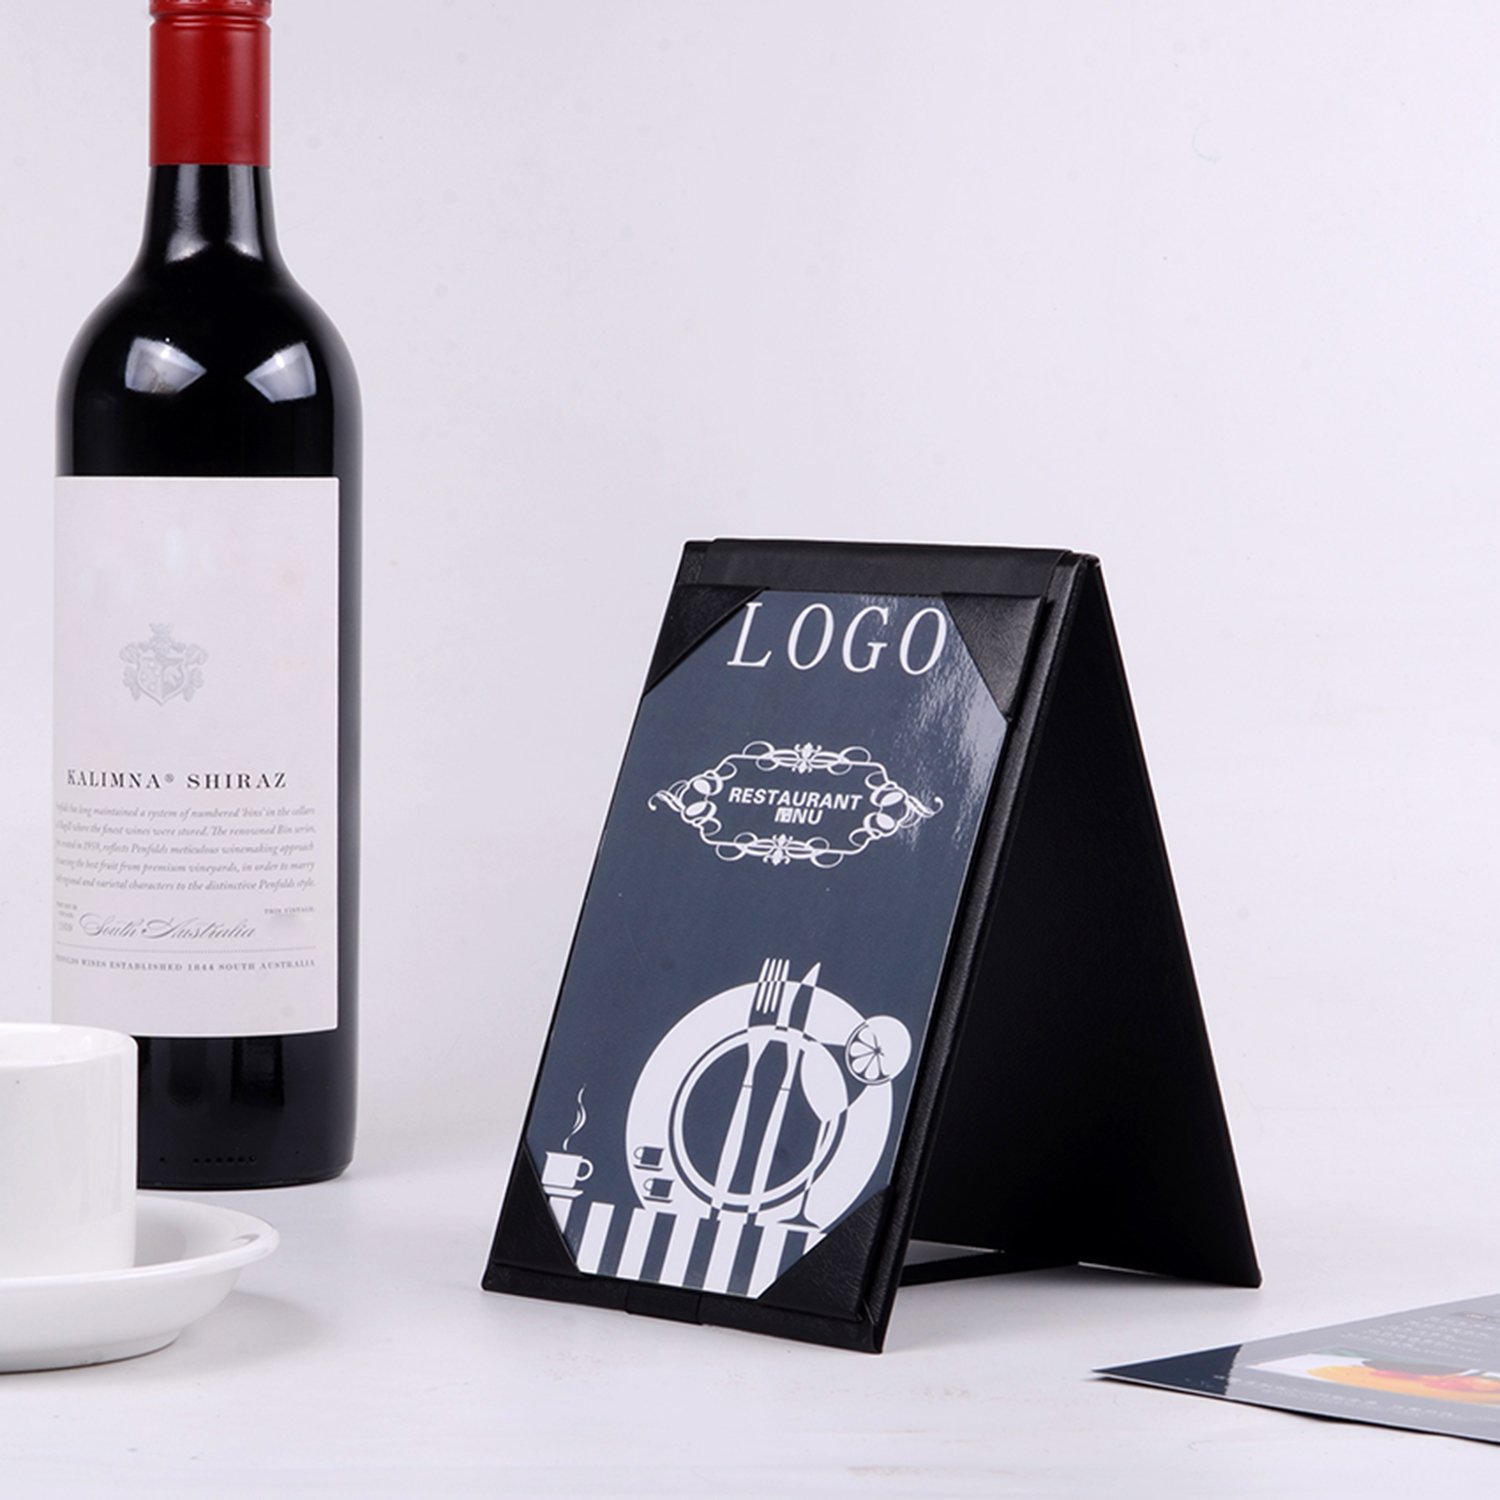 20PCSLeather Table Tent / Menu Holder/ Menu Covers for Specials Drinks or Restaurant Black (6''×4'' inch) by WFD.L (Image #5)